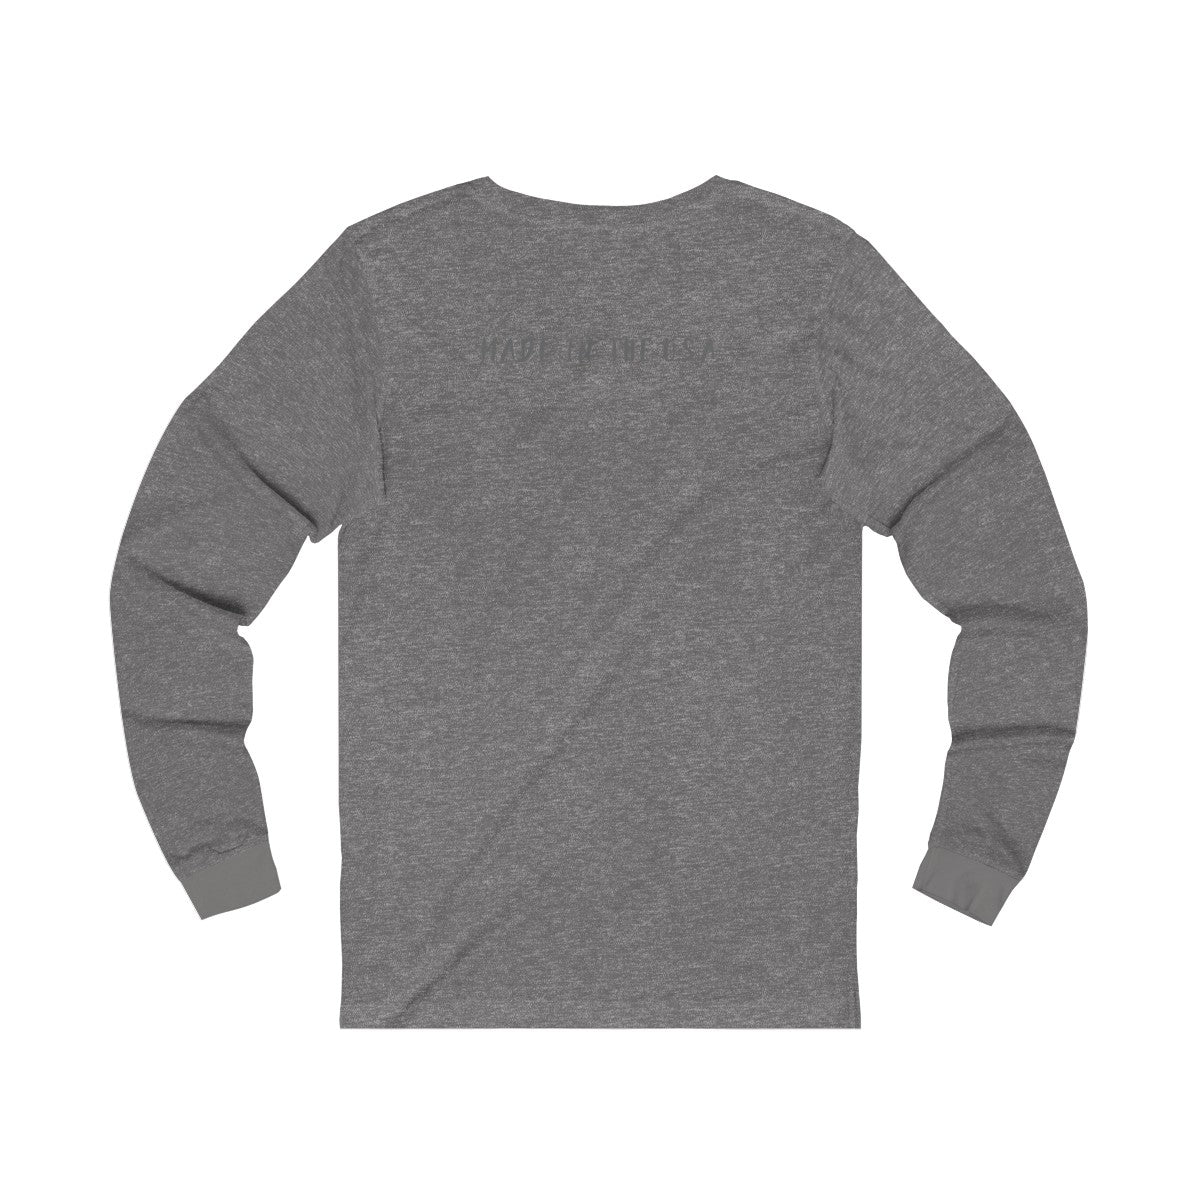 Unisex Jersey Long Sleeve Tee